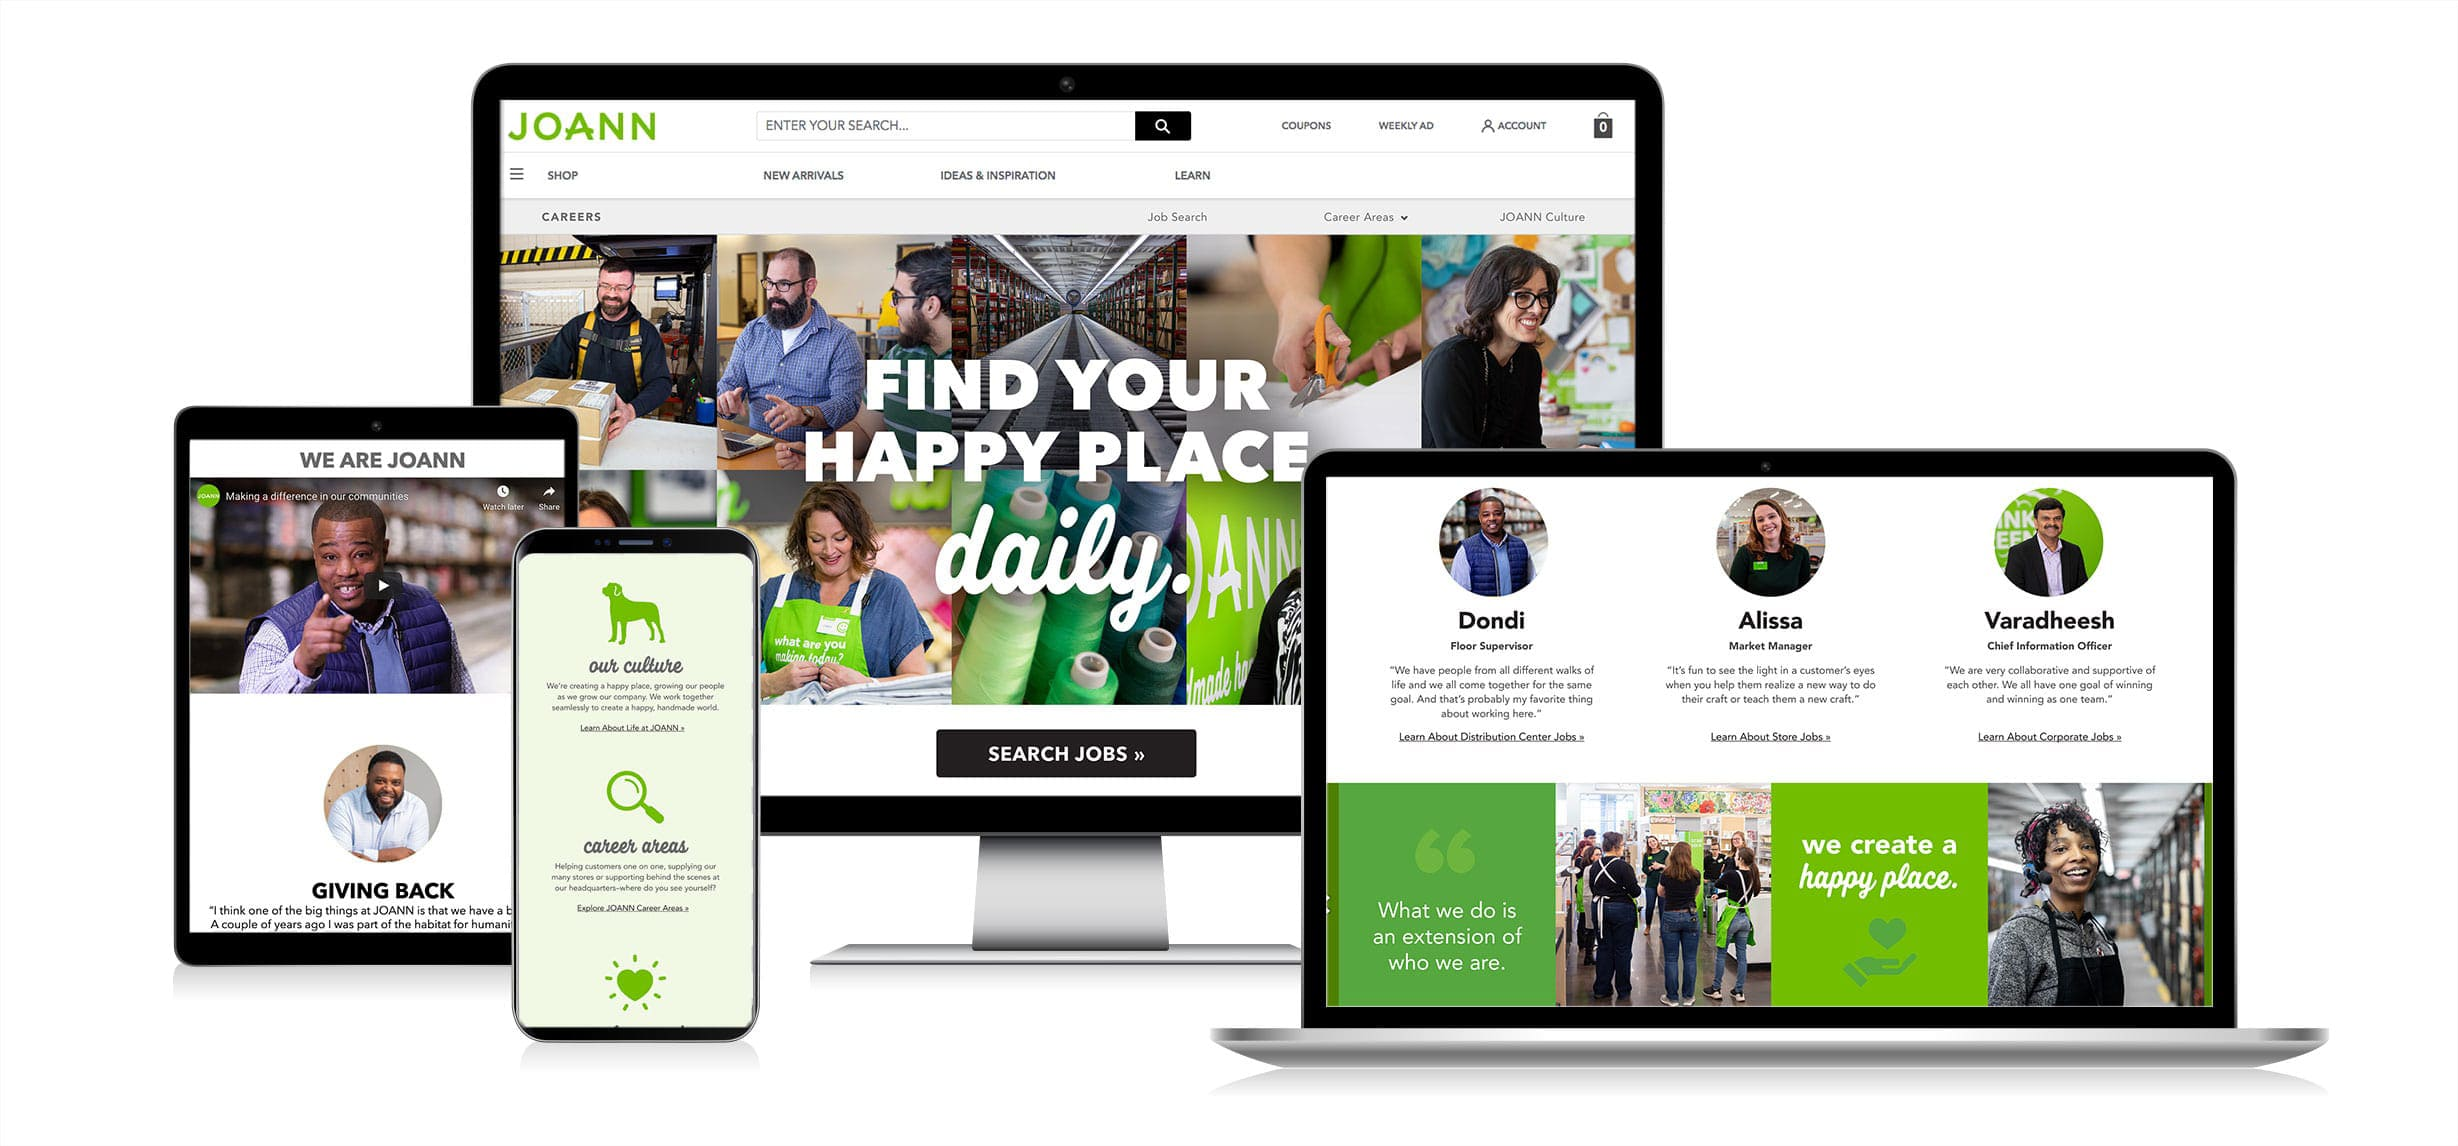 JOANN's new careers website shown on desktop, laptop, tablet and mobile screens.